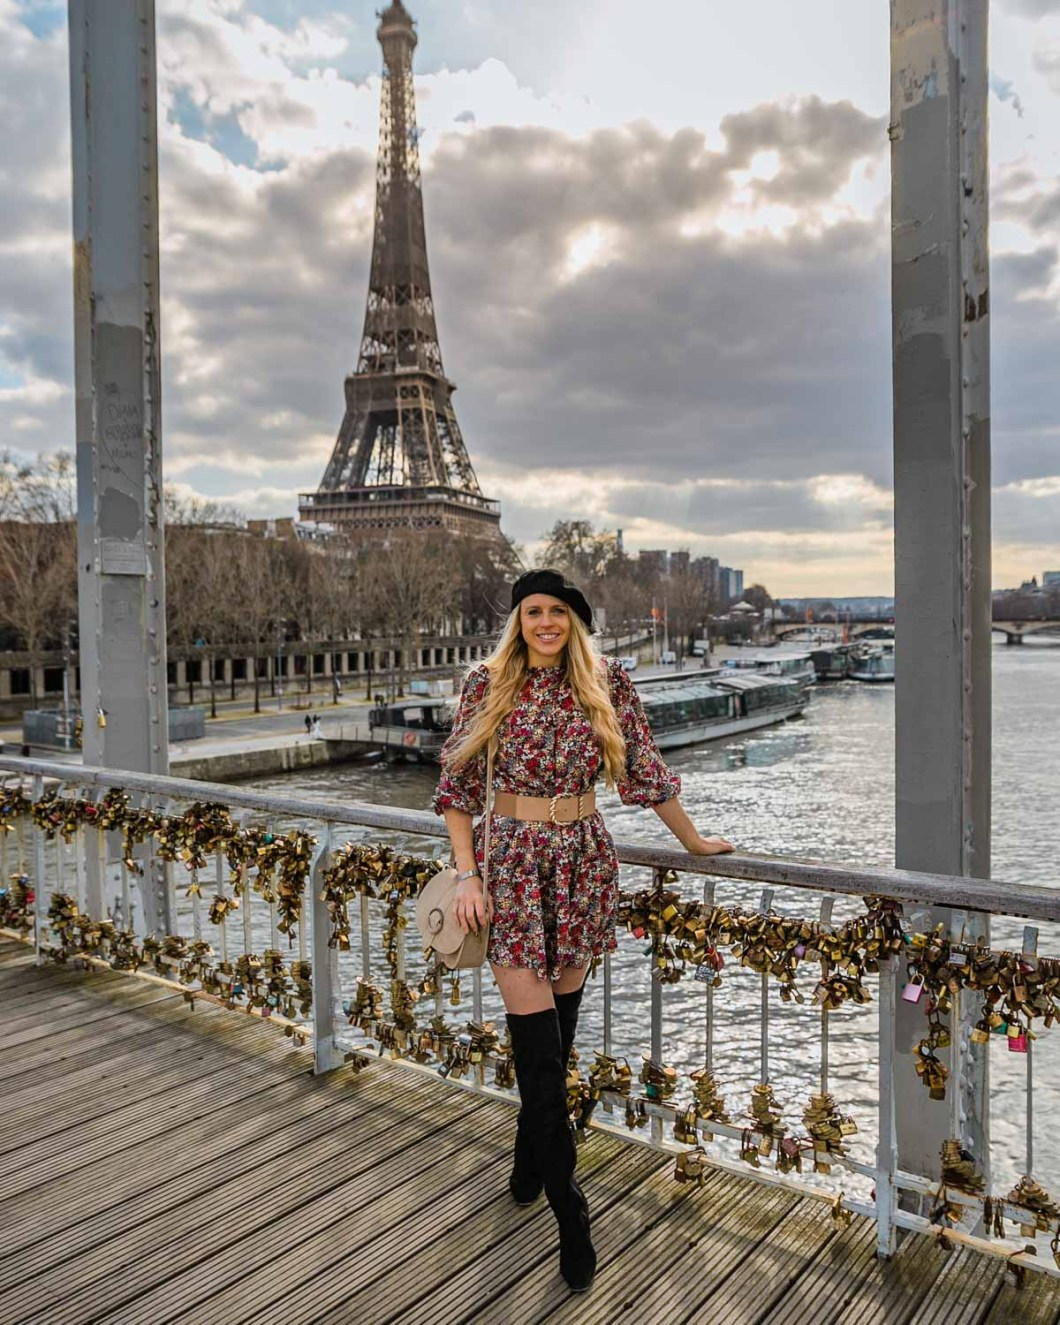 Passerelle Debilly with the Eiffel Tower